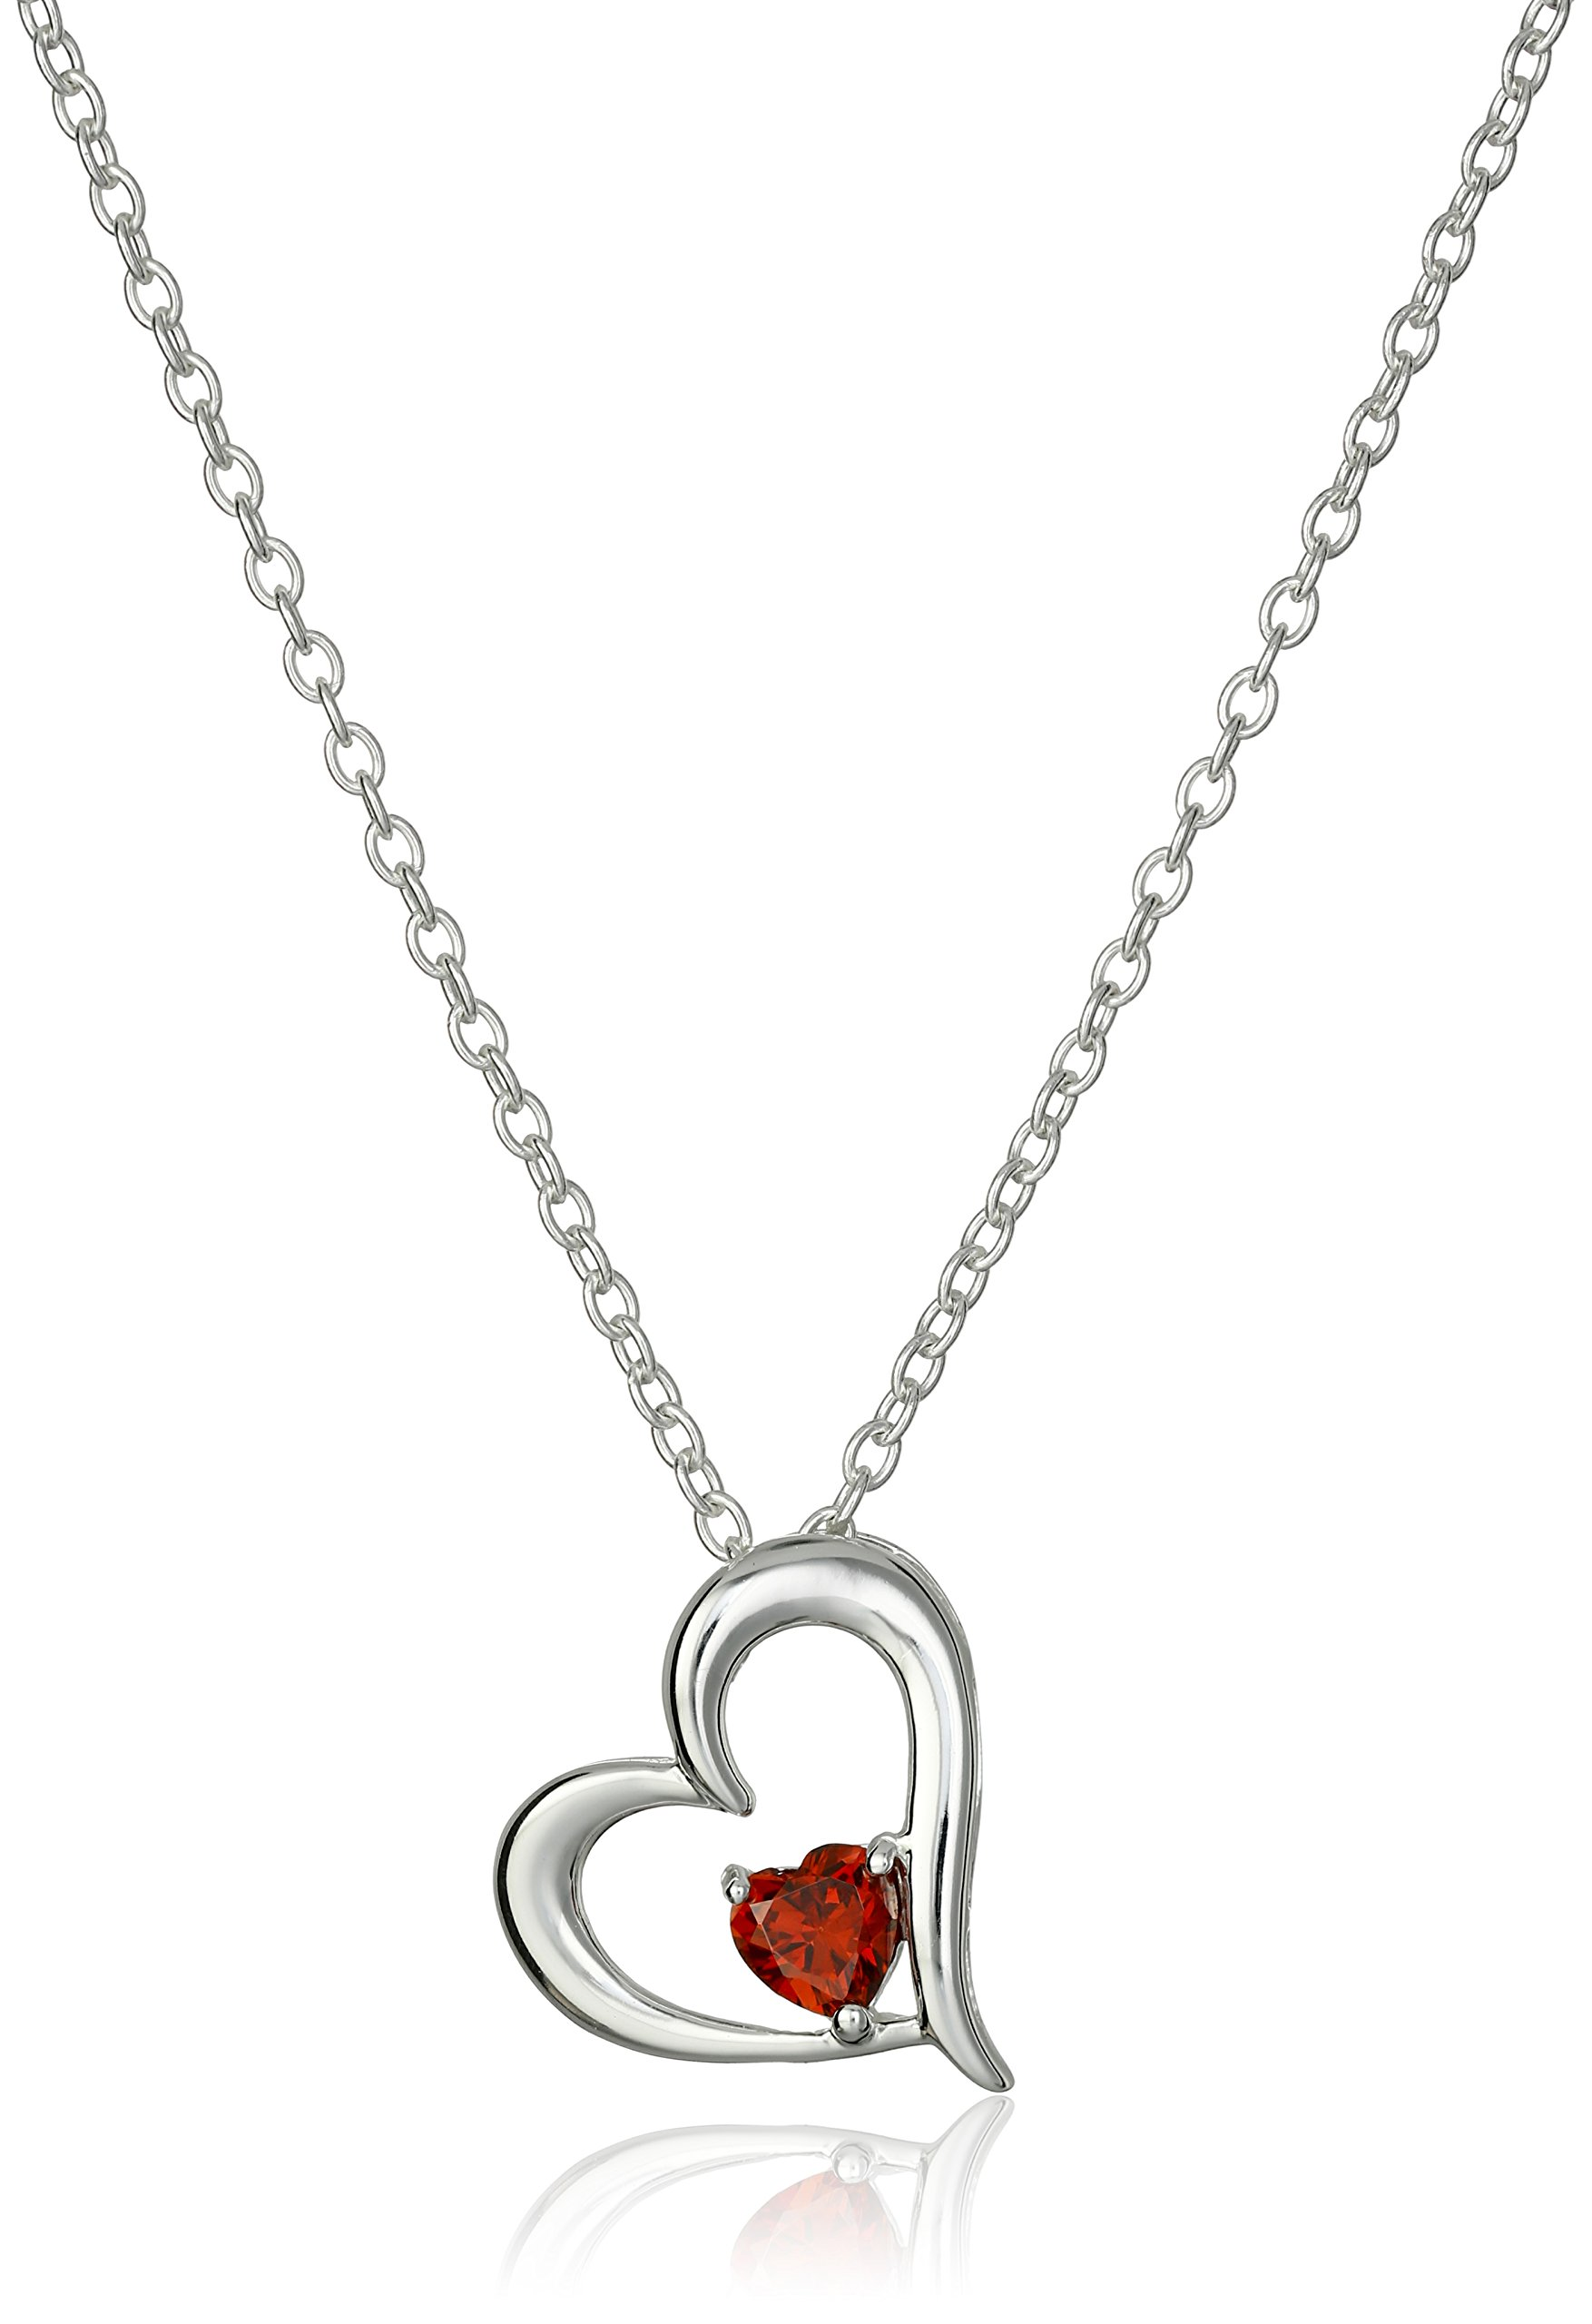 elsa open peretti co necklace sterling authentic heart silver tiffany products